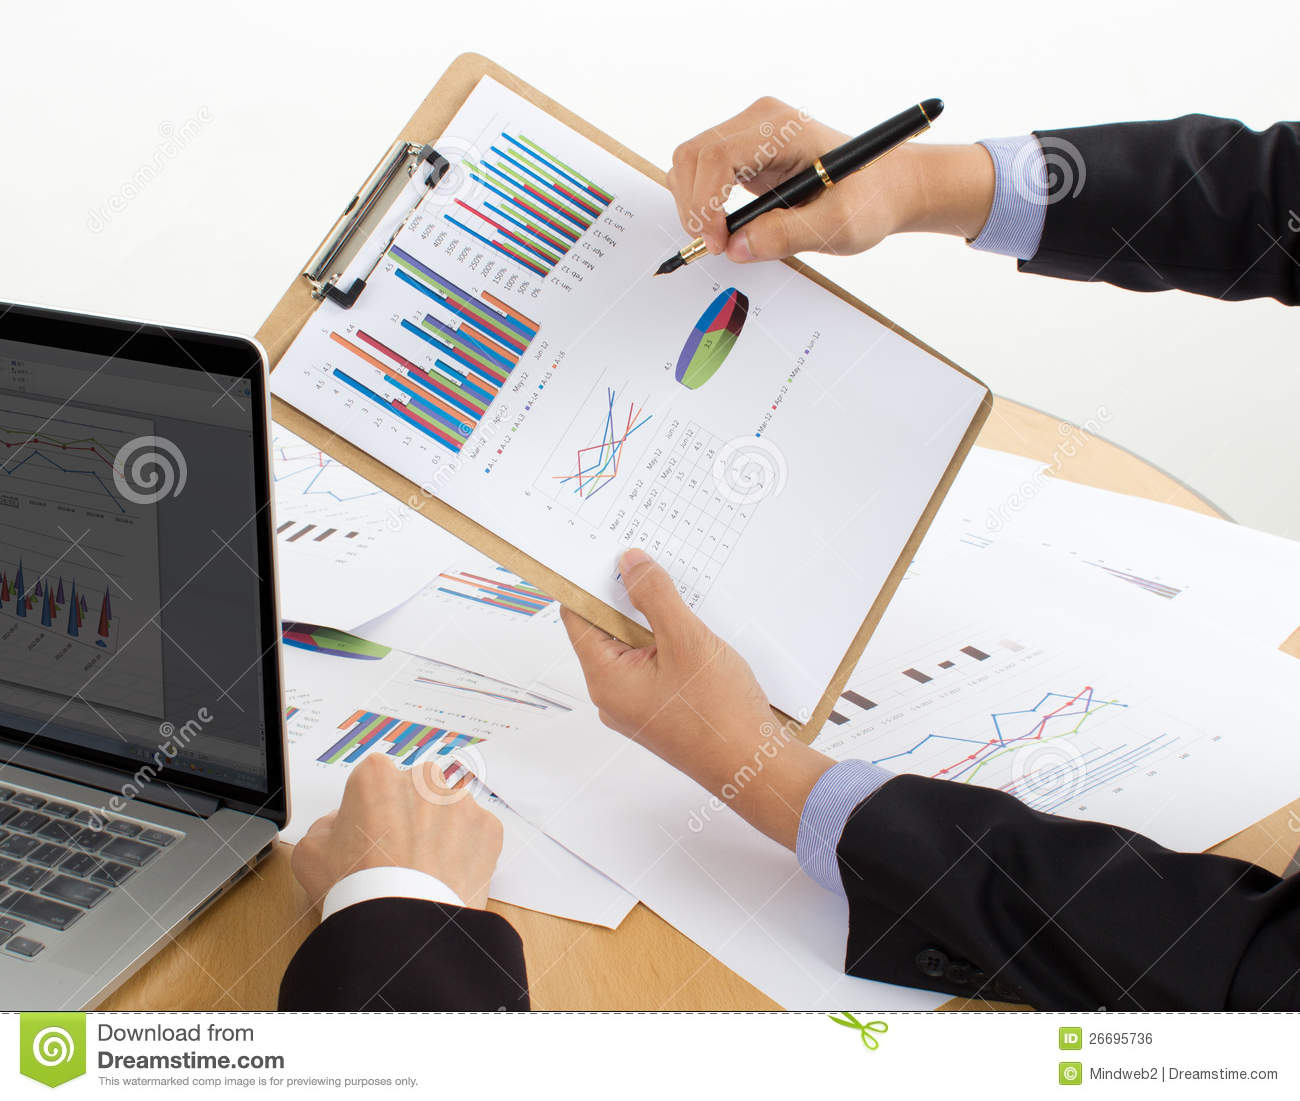 Review The Report Stock Photo. Image Of Commerce, Hands